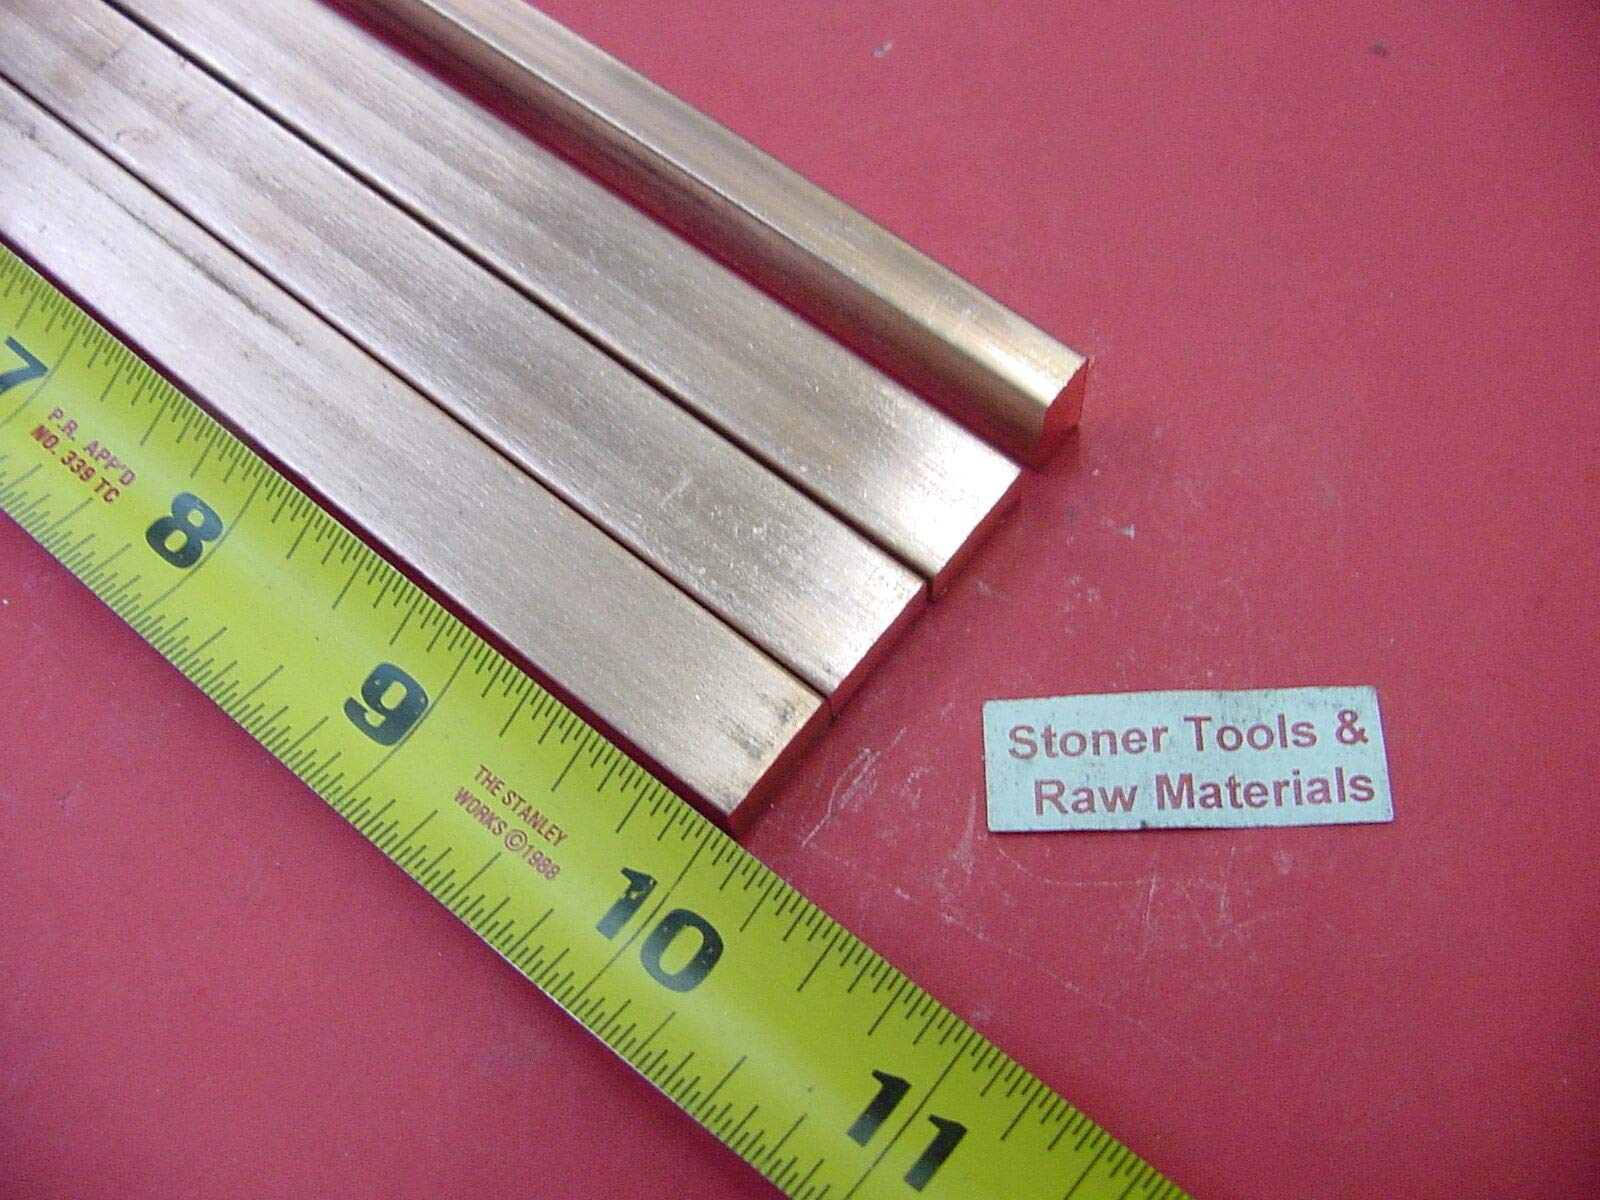 4 Pieces 1/4''x 1/2'' C110 COPPER BAR 10'' long Solid Flat .25'' Bus Bar Stock H02 by Okumahome